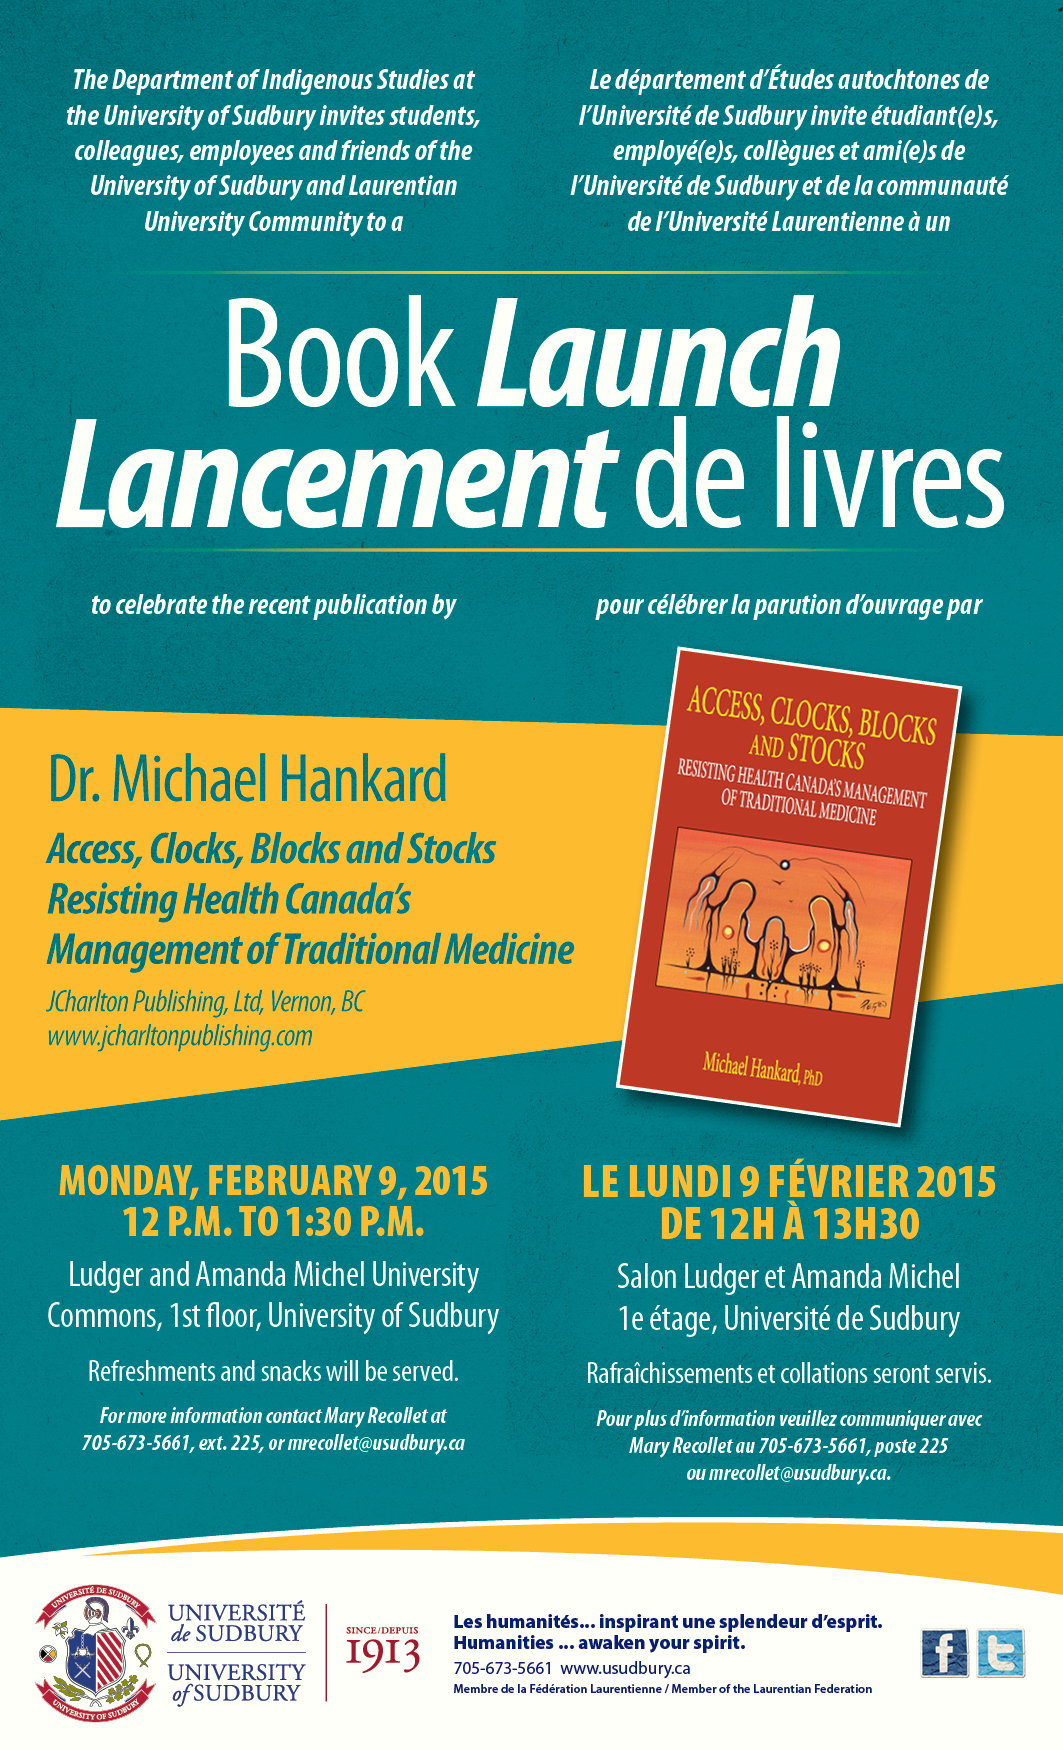 University of Sudbury | Université de Sudbury - Book Launch